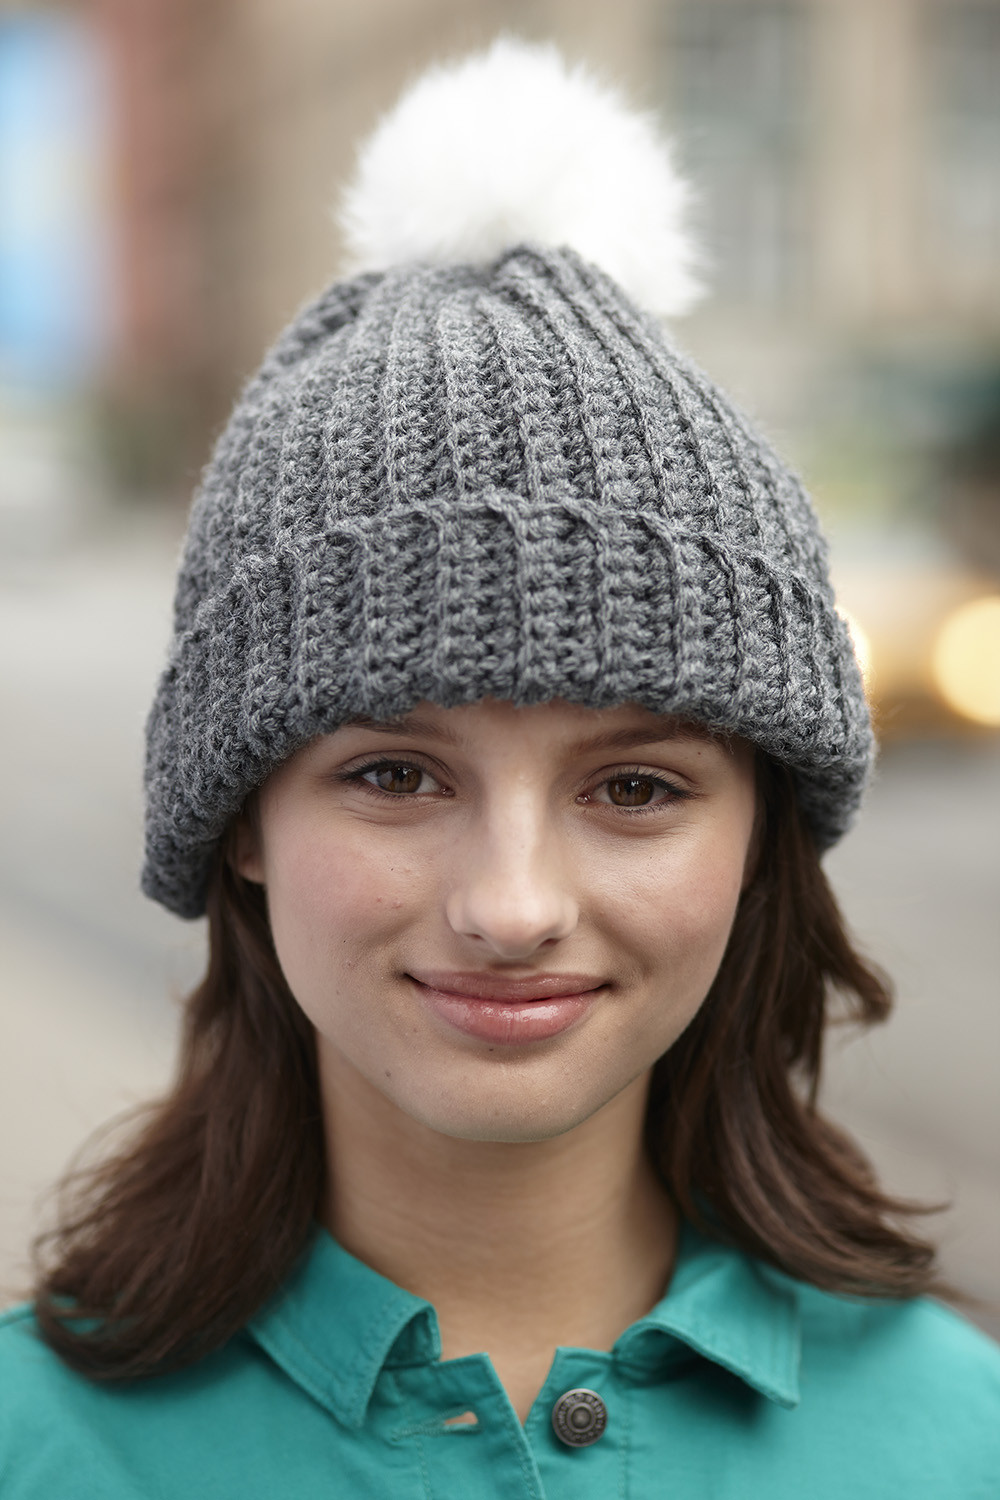 Fresh Free Crochet Patterns for Adult Hats Free Crochet Hat Patterns for Adults Of Incredible 50 Pics Free Crochet Hat Patterns for Adults